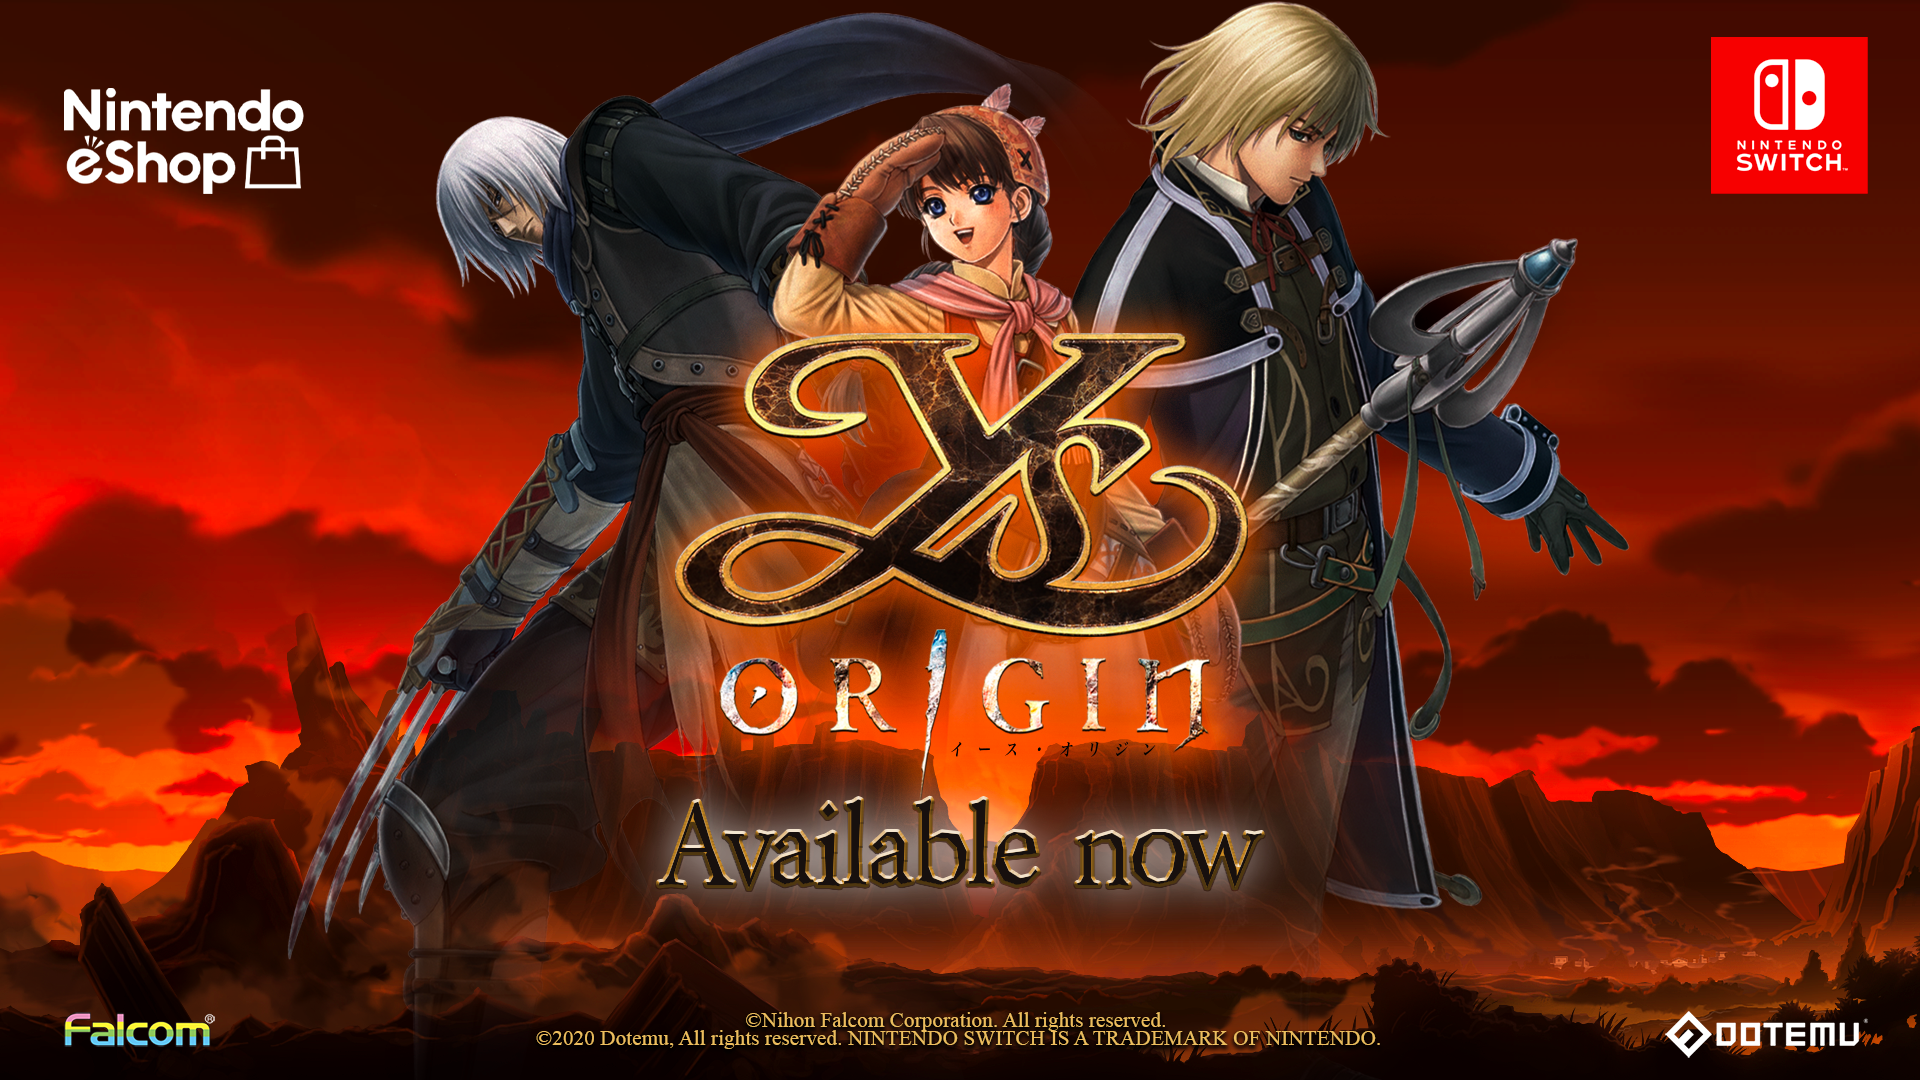 Ys Origin is now available on Nintendo Switch!